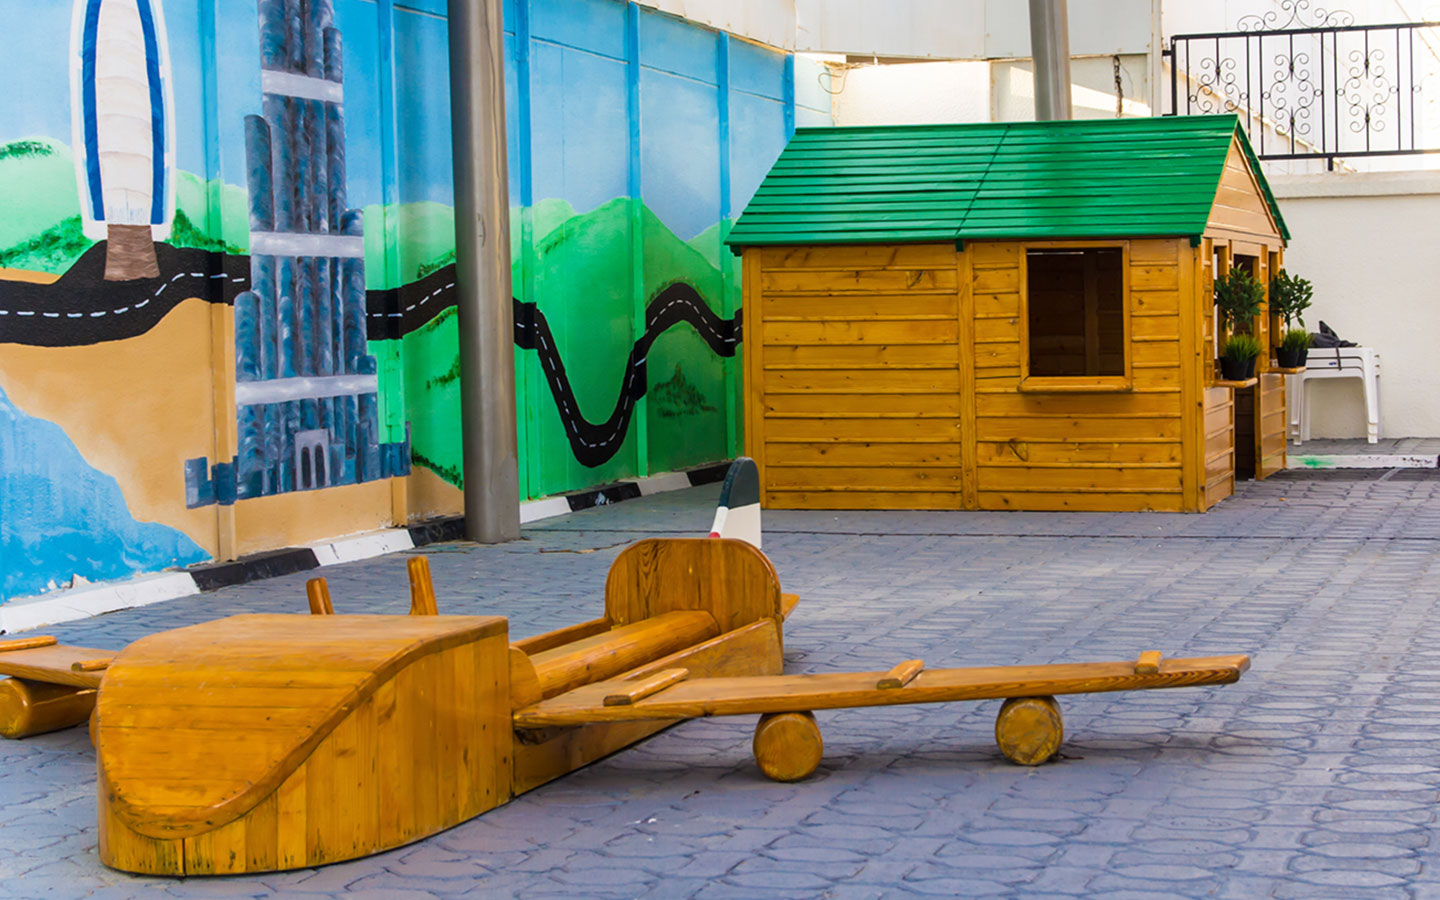 is in our list of nurseries in Abu Dhabi as the only UK accredited nursery.